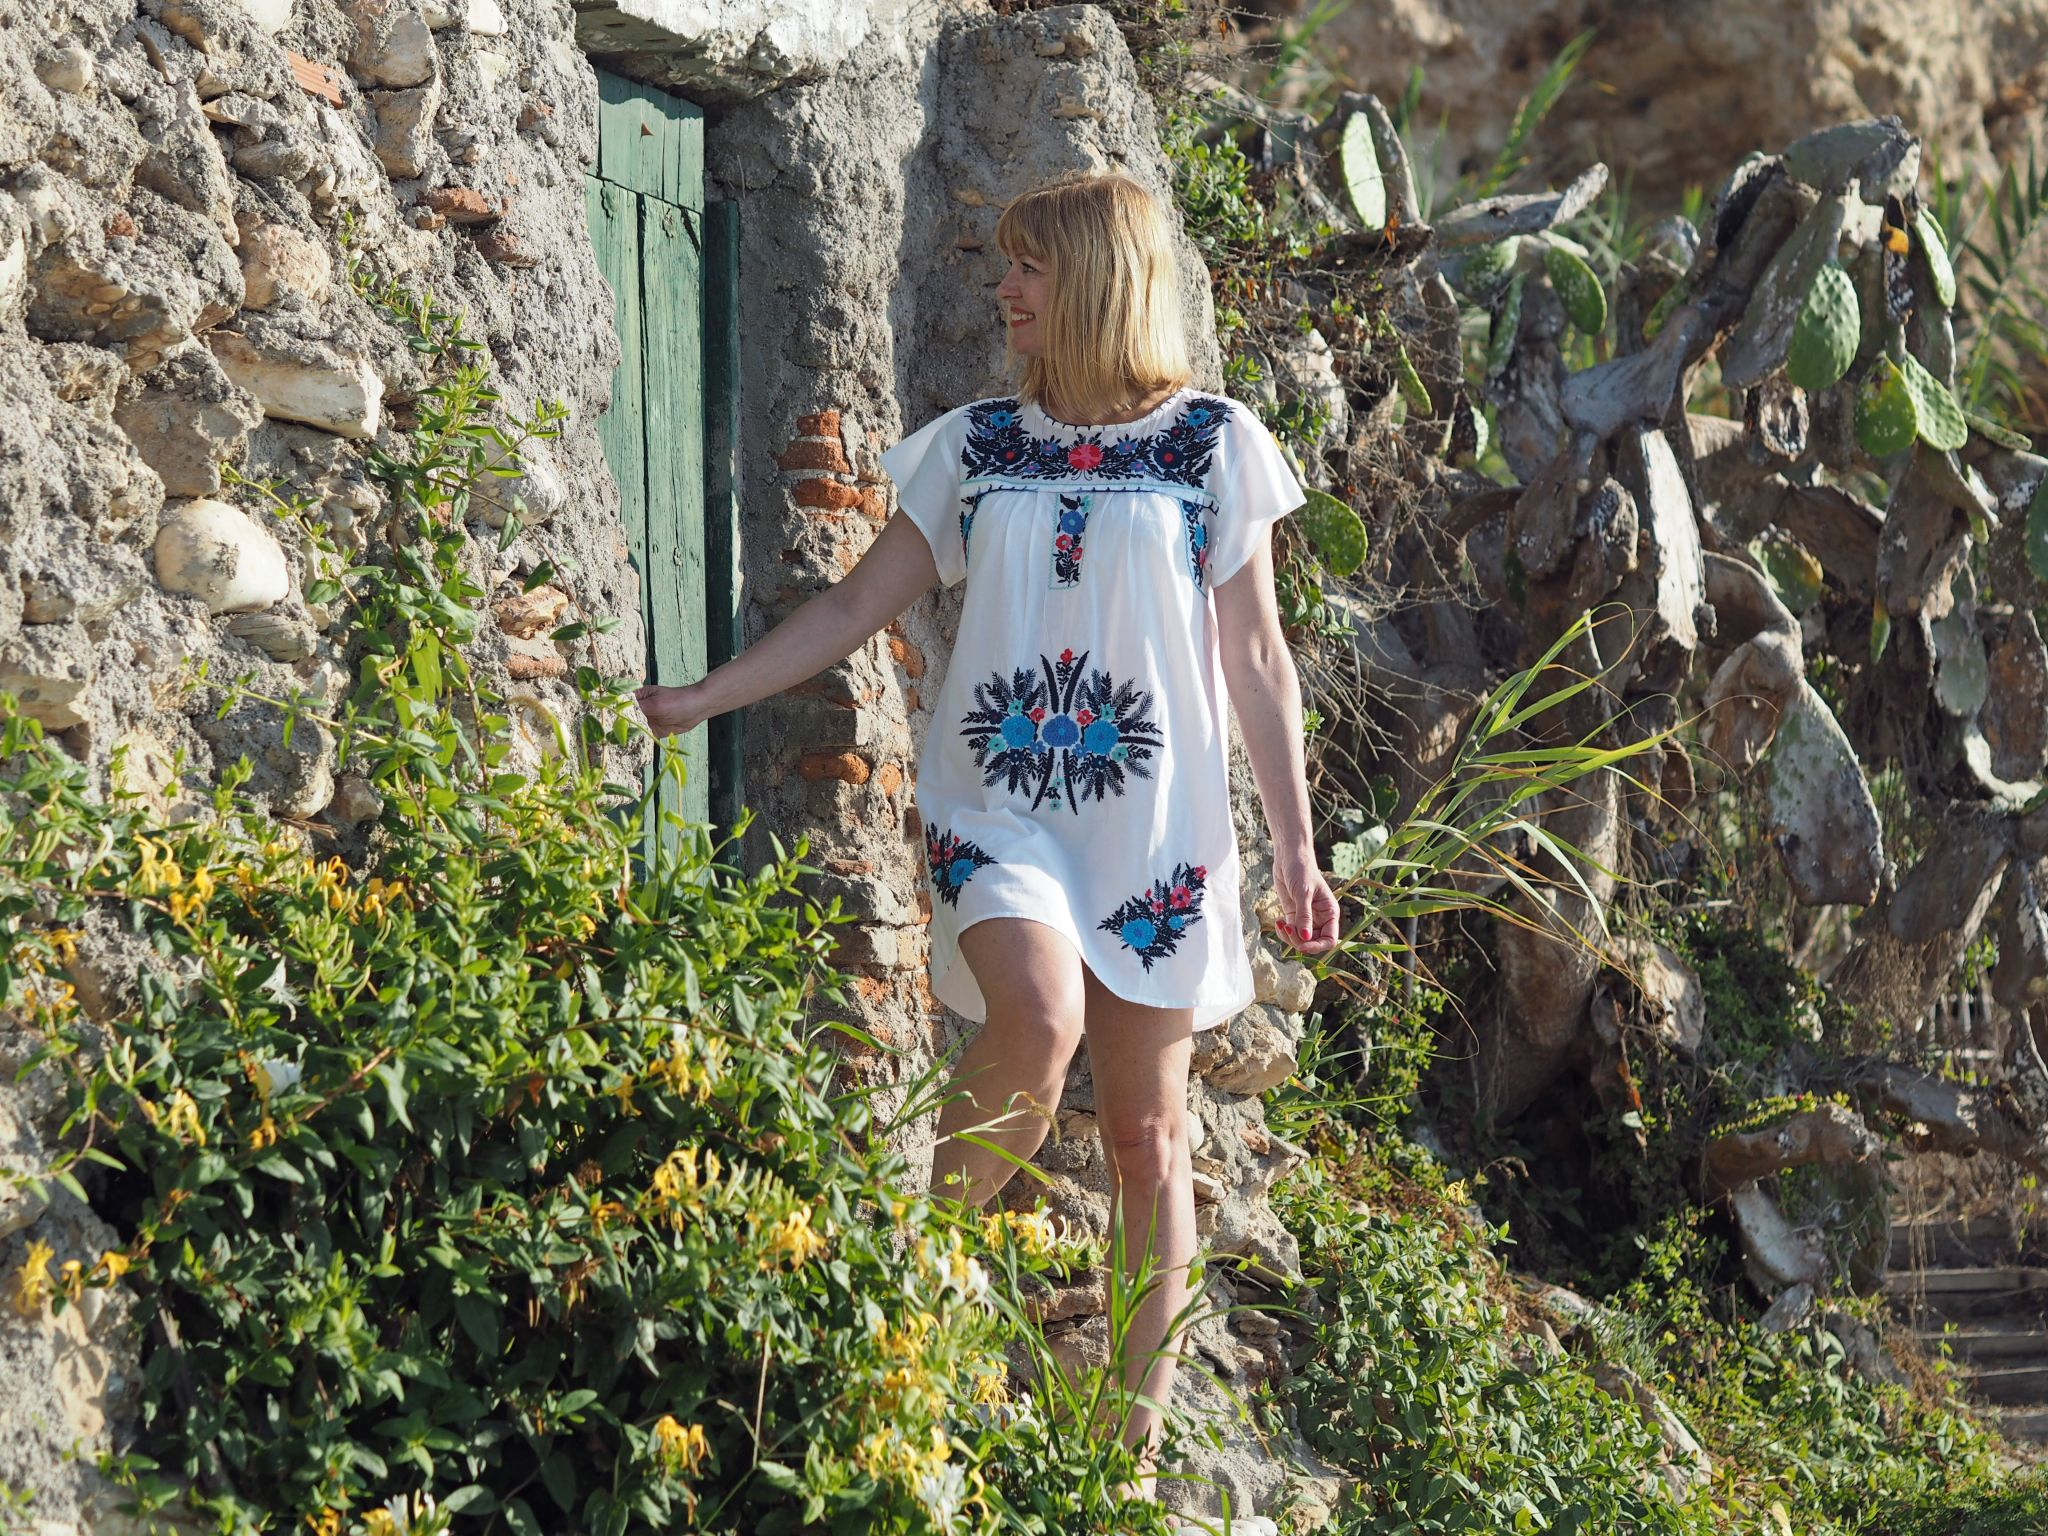 what-lizzy-loves-holiday-outfits-holidayoutfits-white-embroidered-beach-dress-green-door-nerja